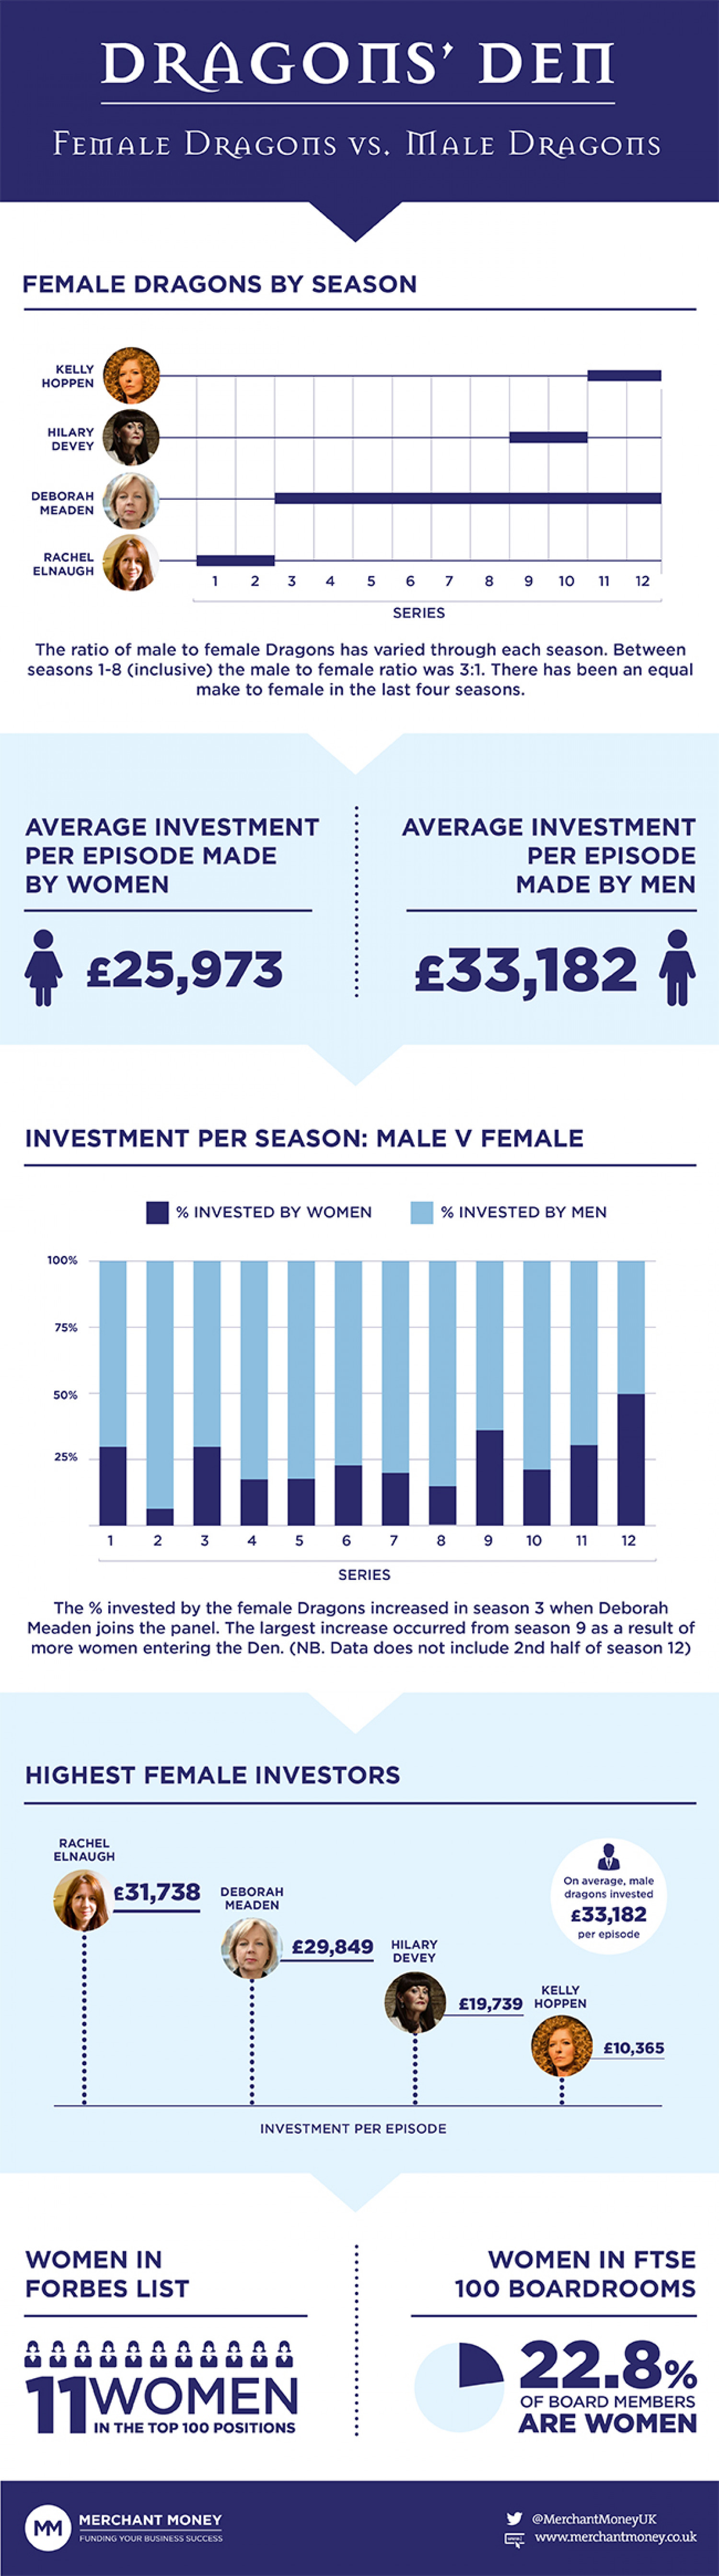 Dragons' Den: Battle of the Sexes Infographic